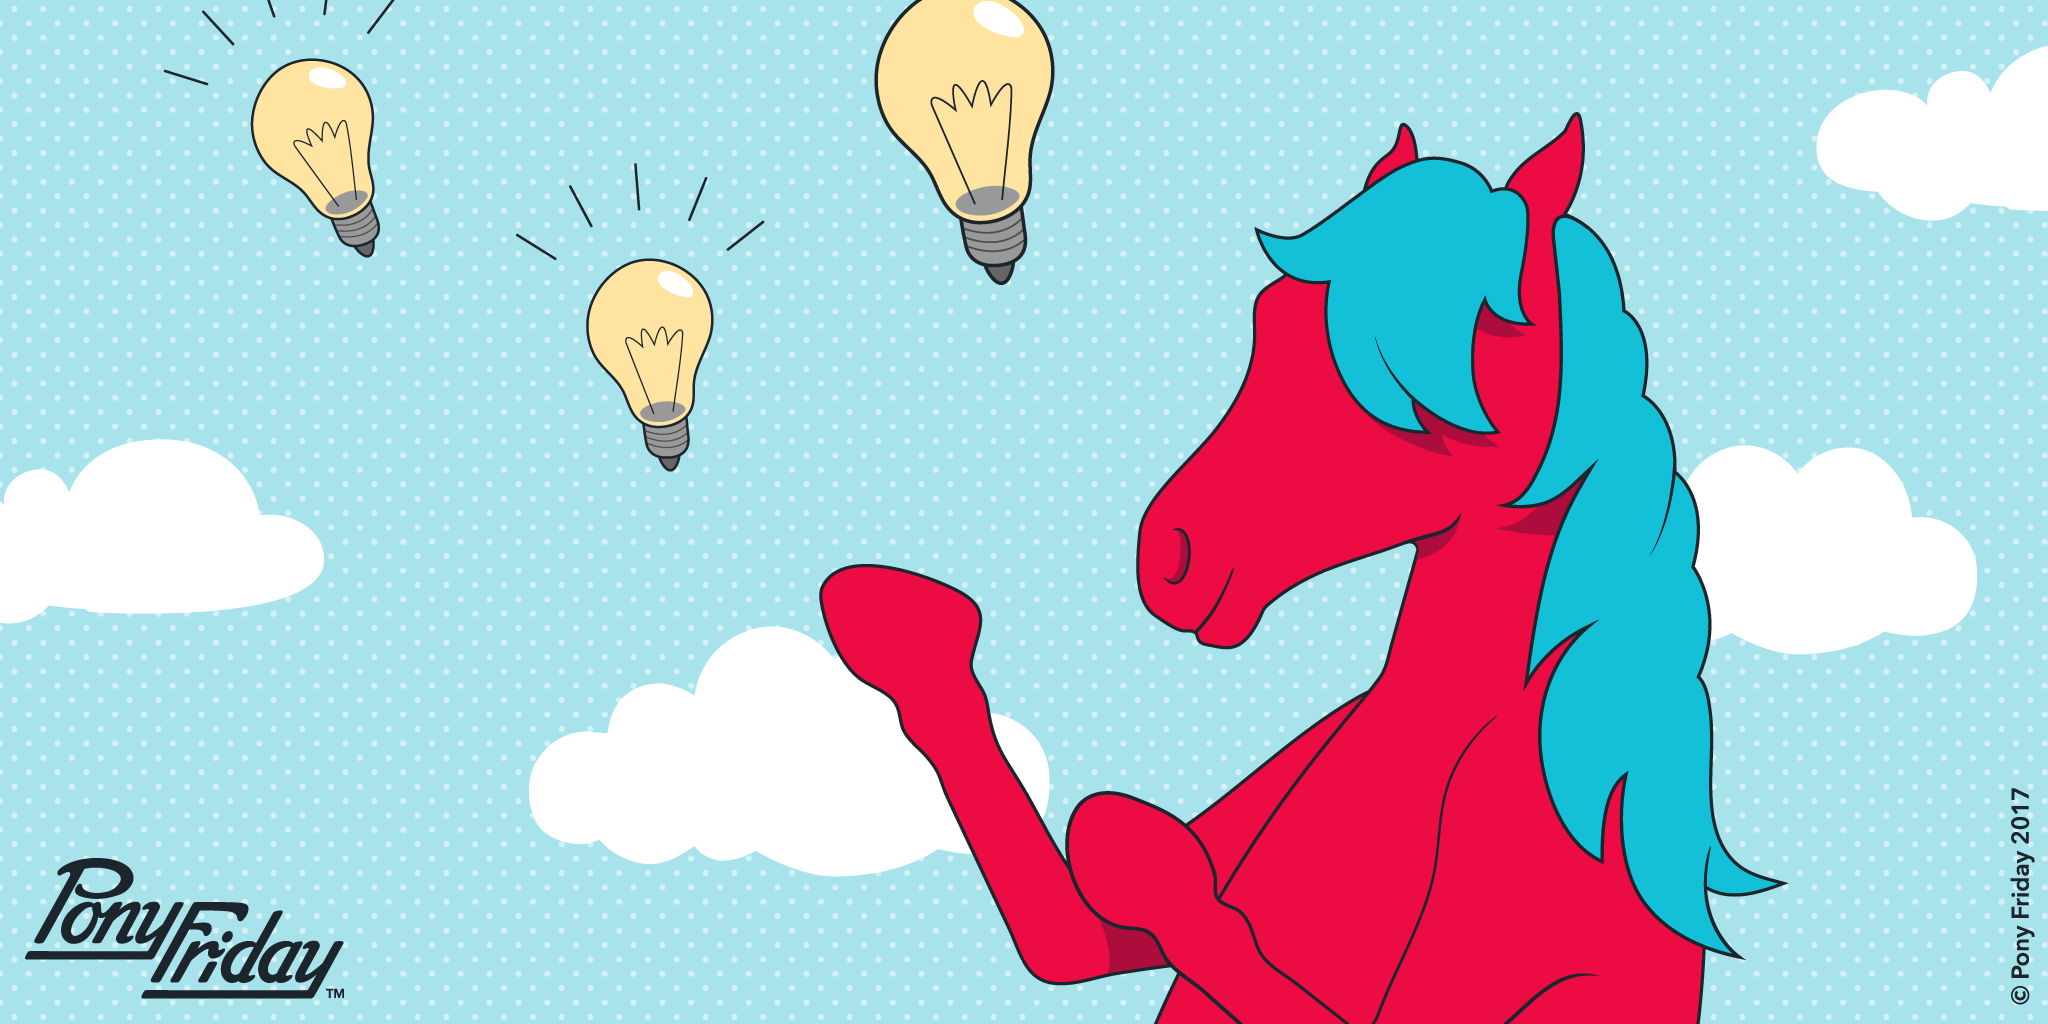 Pony-Friday-Light-Idea-Thought-Thinking-Horse-Lightbulb-Blog-Header-Image.png